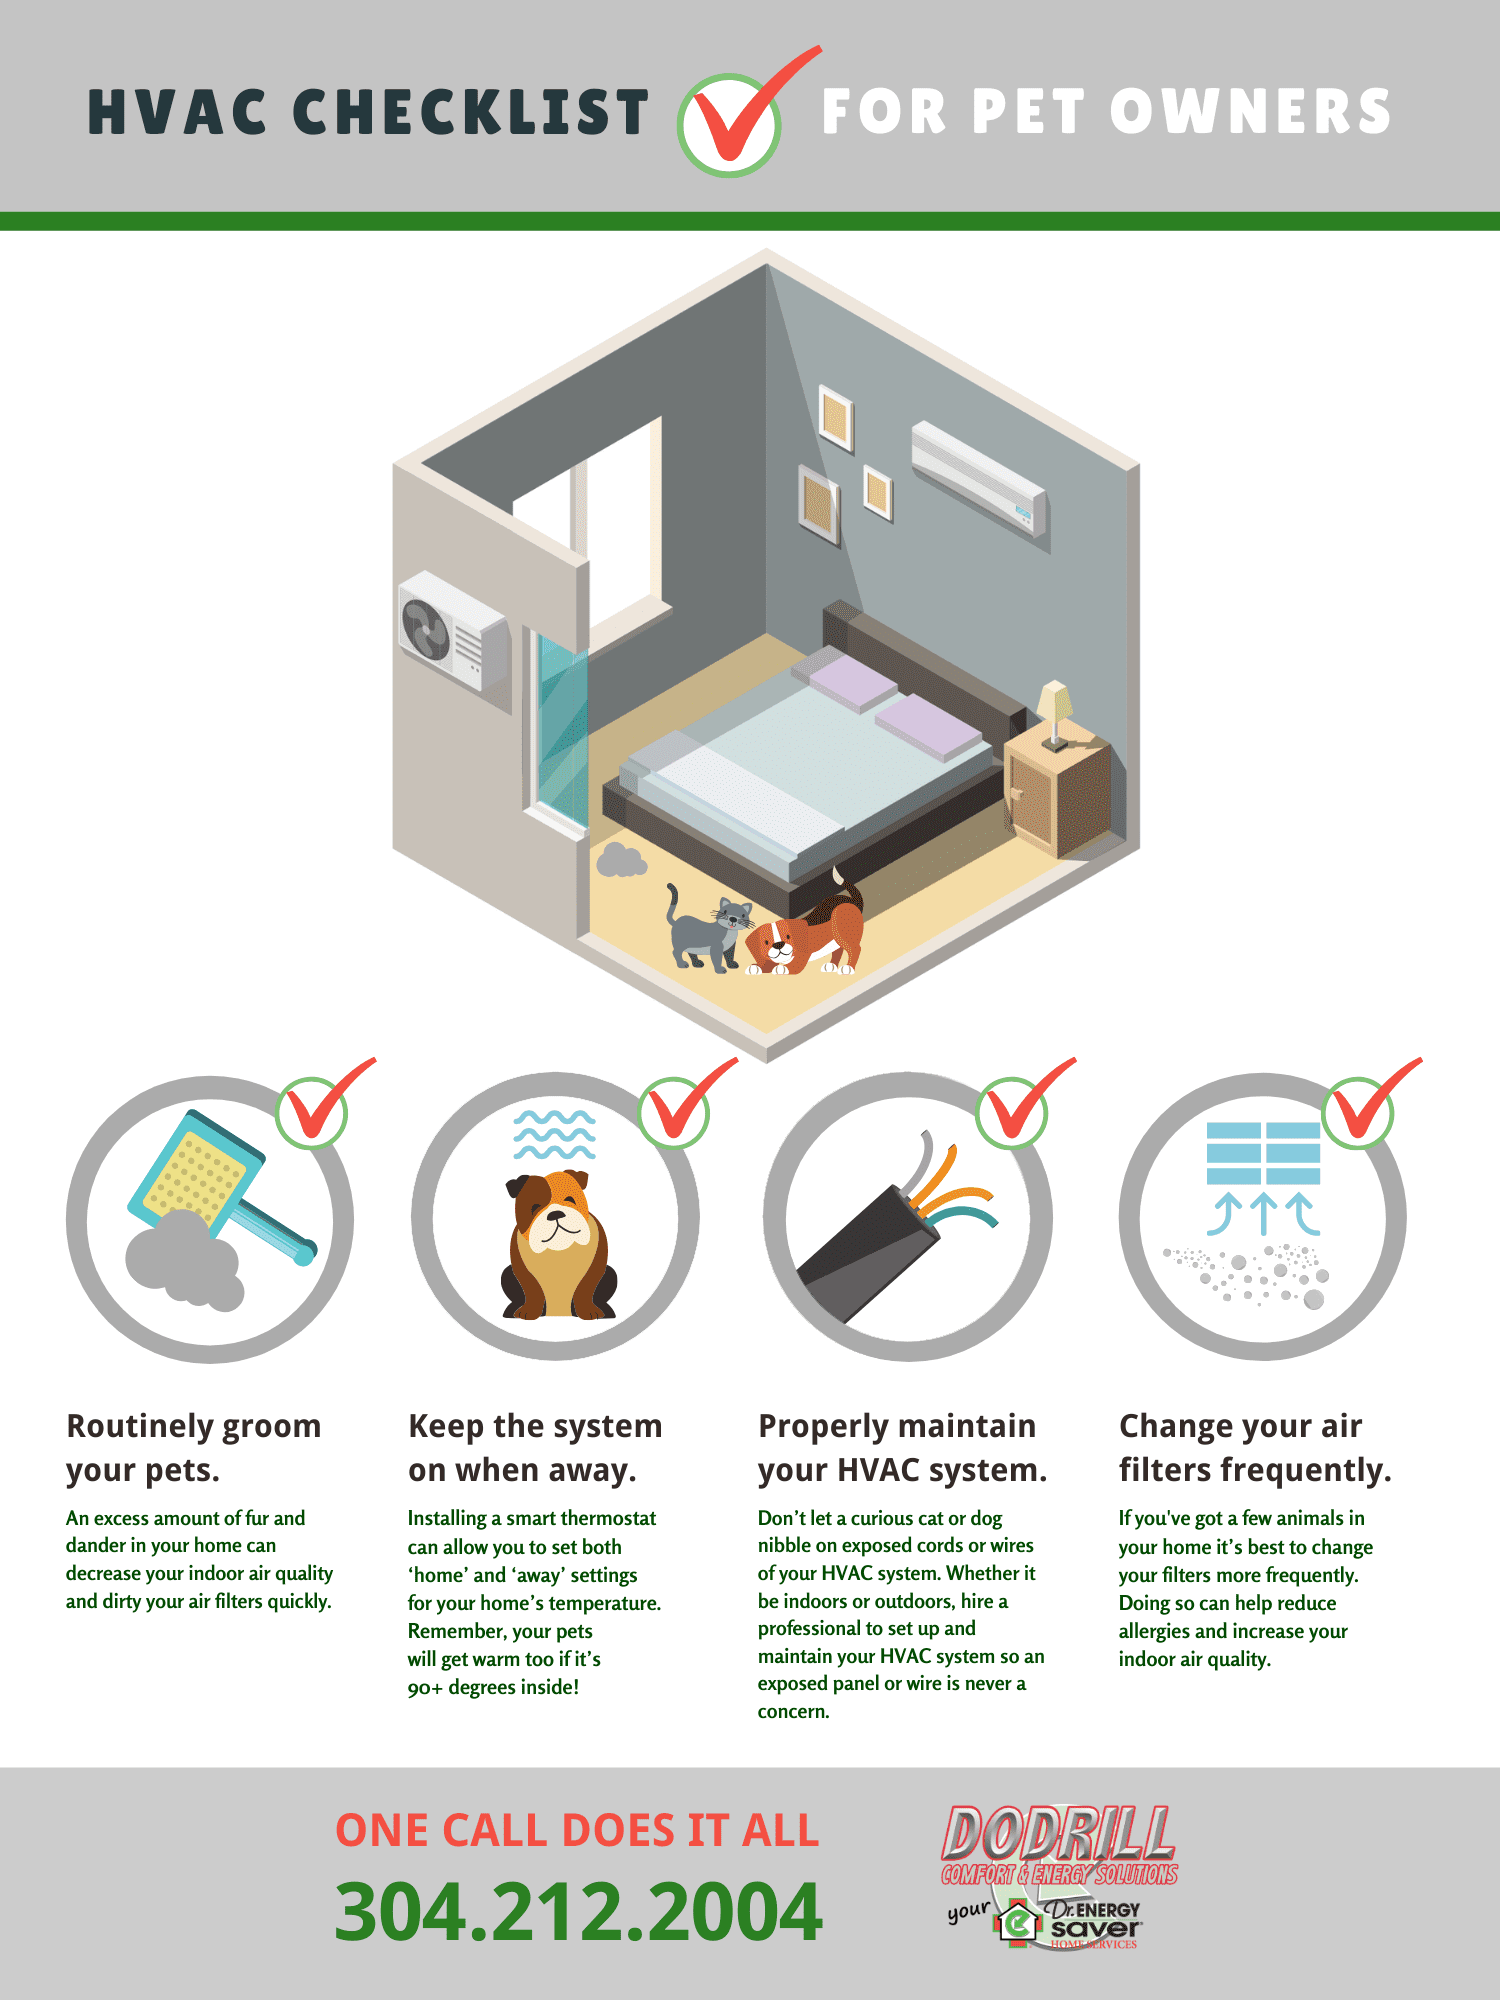 [INFOGRAPHIC] HVAC Checklist for Pet Owners